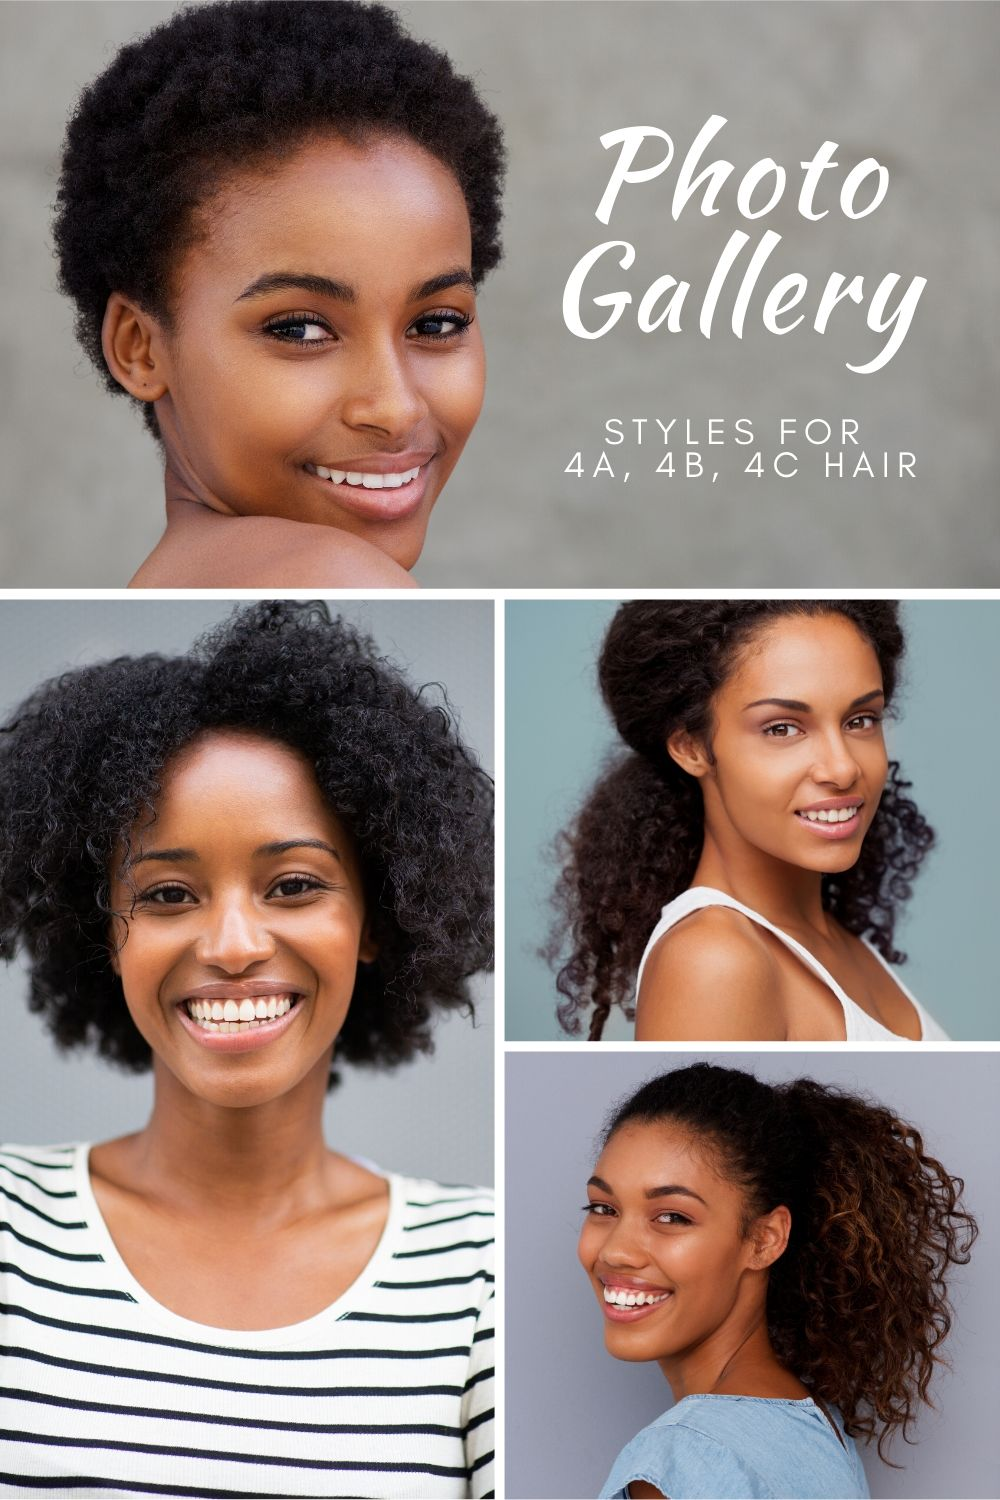 Gallery Of Haircuts and Styles For 4a, 4b, 4c Hair Types